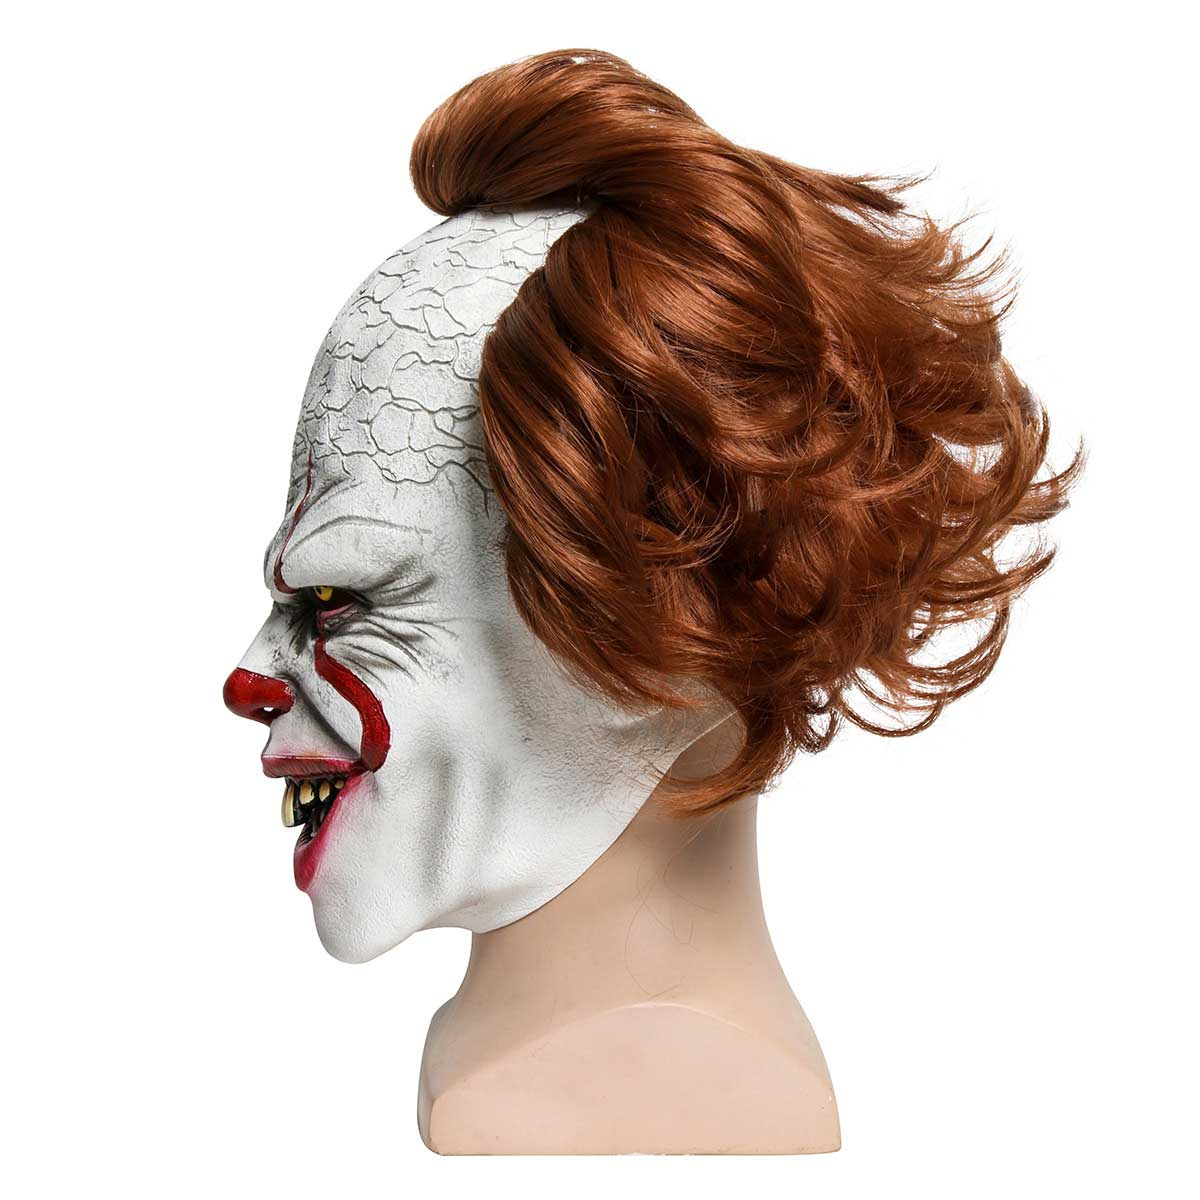 Joker Pennywise Full Face Halloween Mask